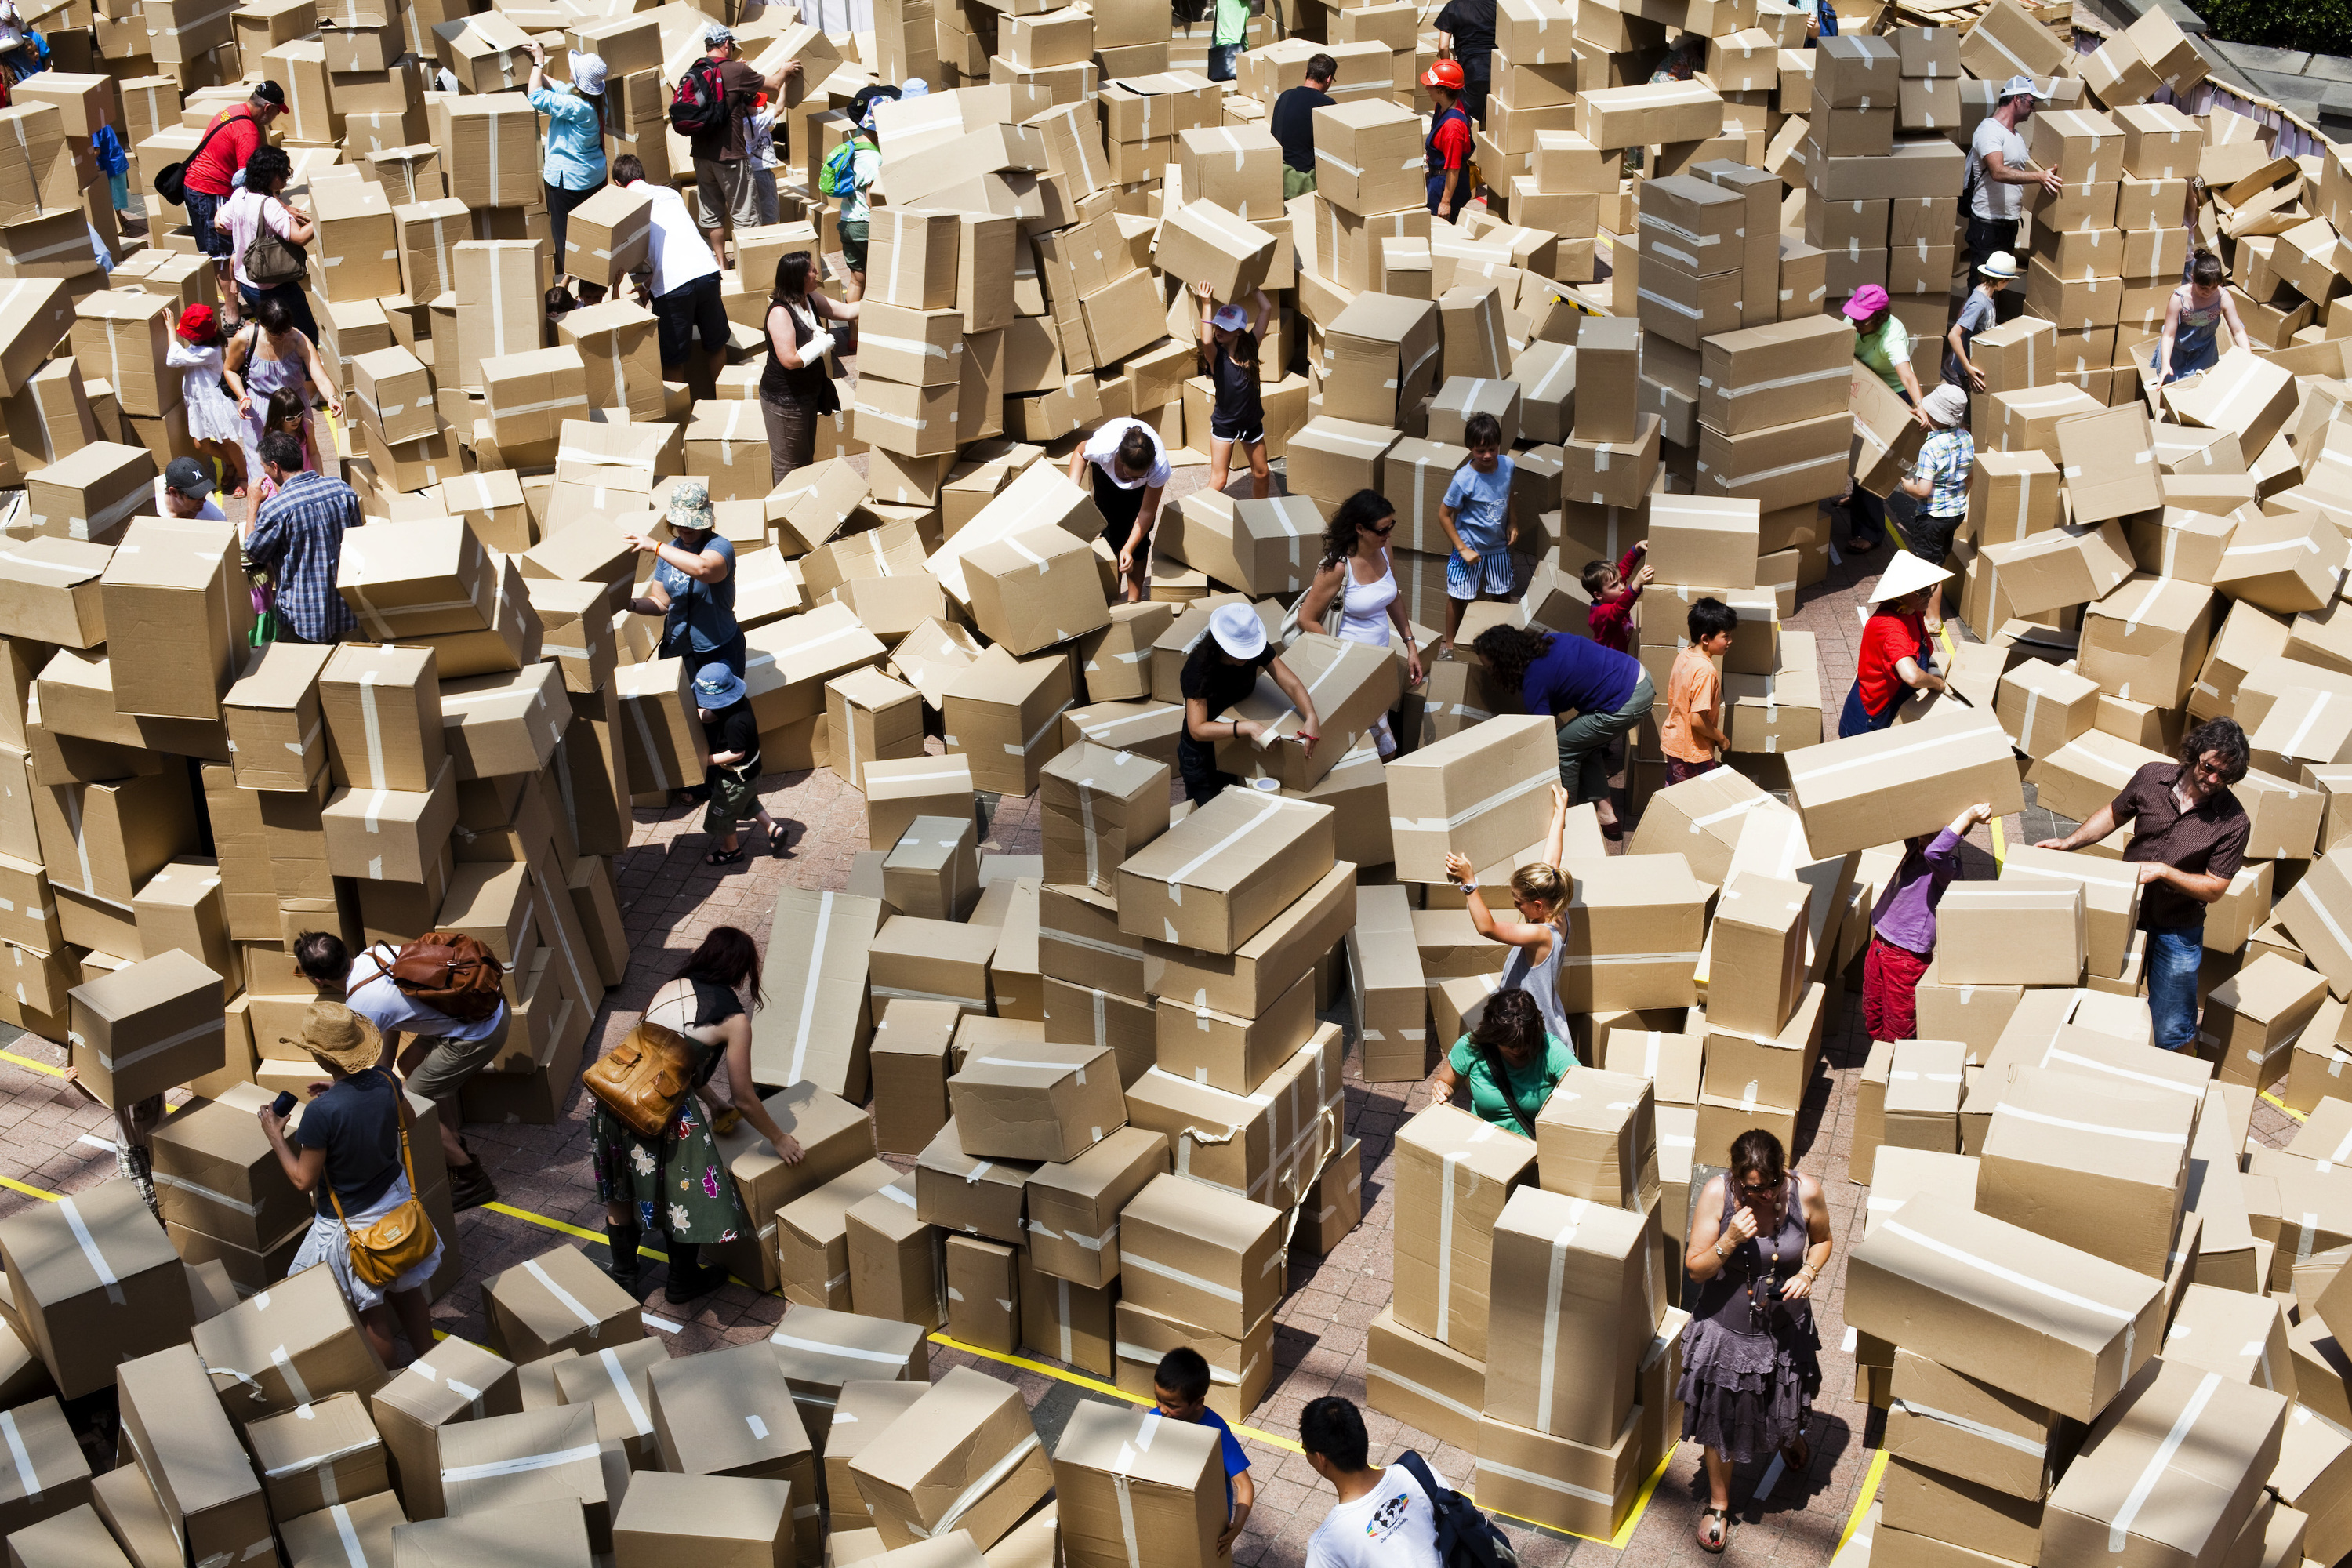 A lot of cardboard boxes with people building towers out of them